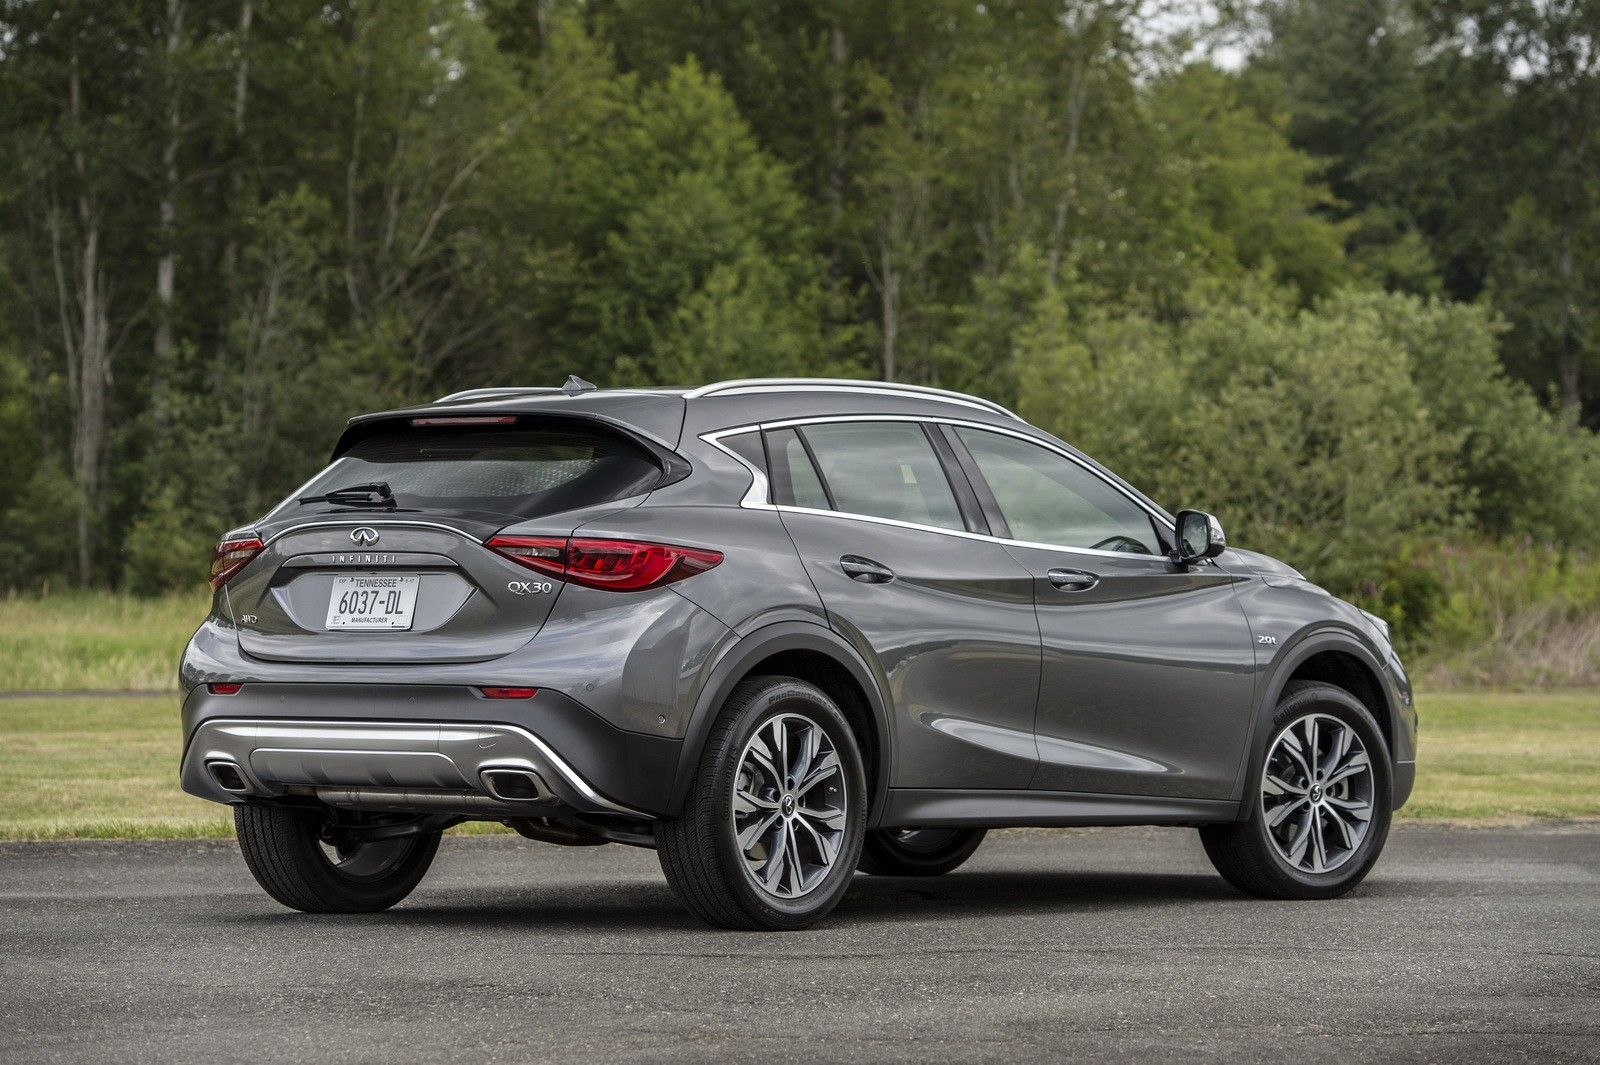 2017 Infiniti Qx30 Priced From Under 30 000 Cheaper Than X1 Q3 And Gla Autoevolution